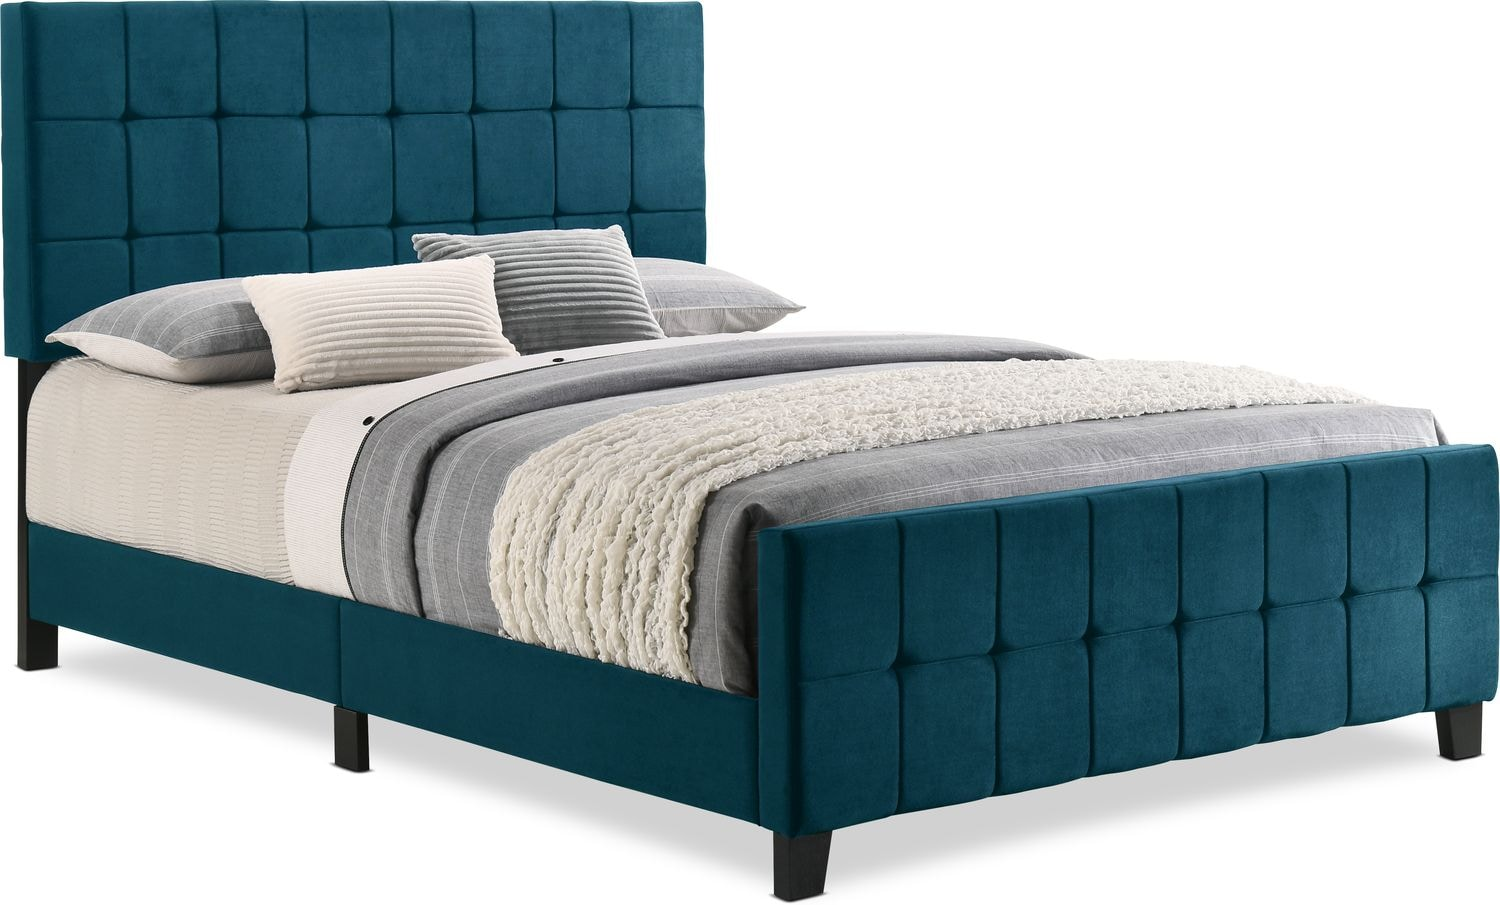 Bedroom Furniture - Hensley Upholstered Bed